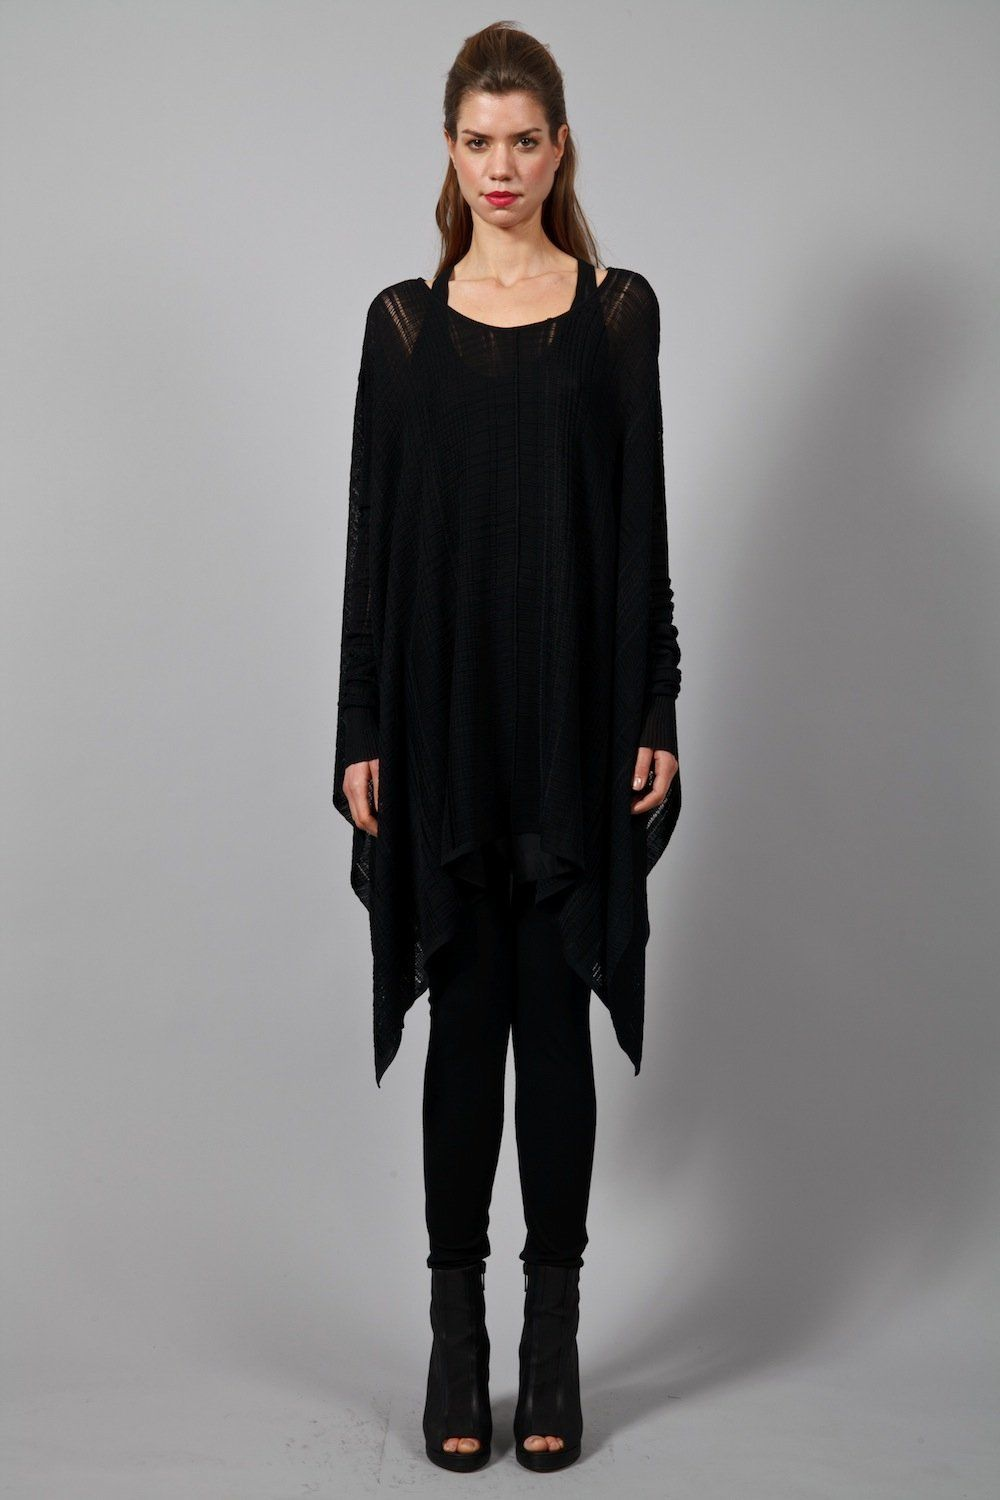 Damir Doma Knitted Oversize Top